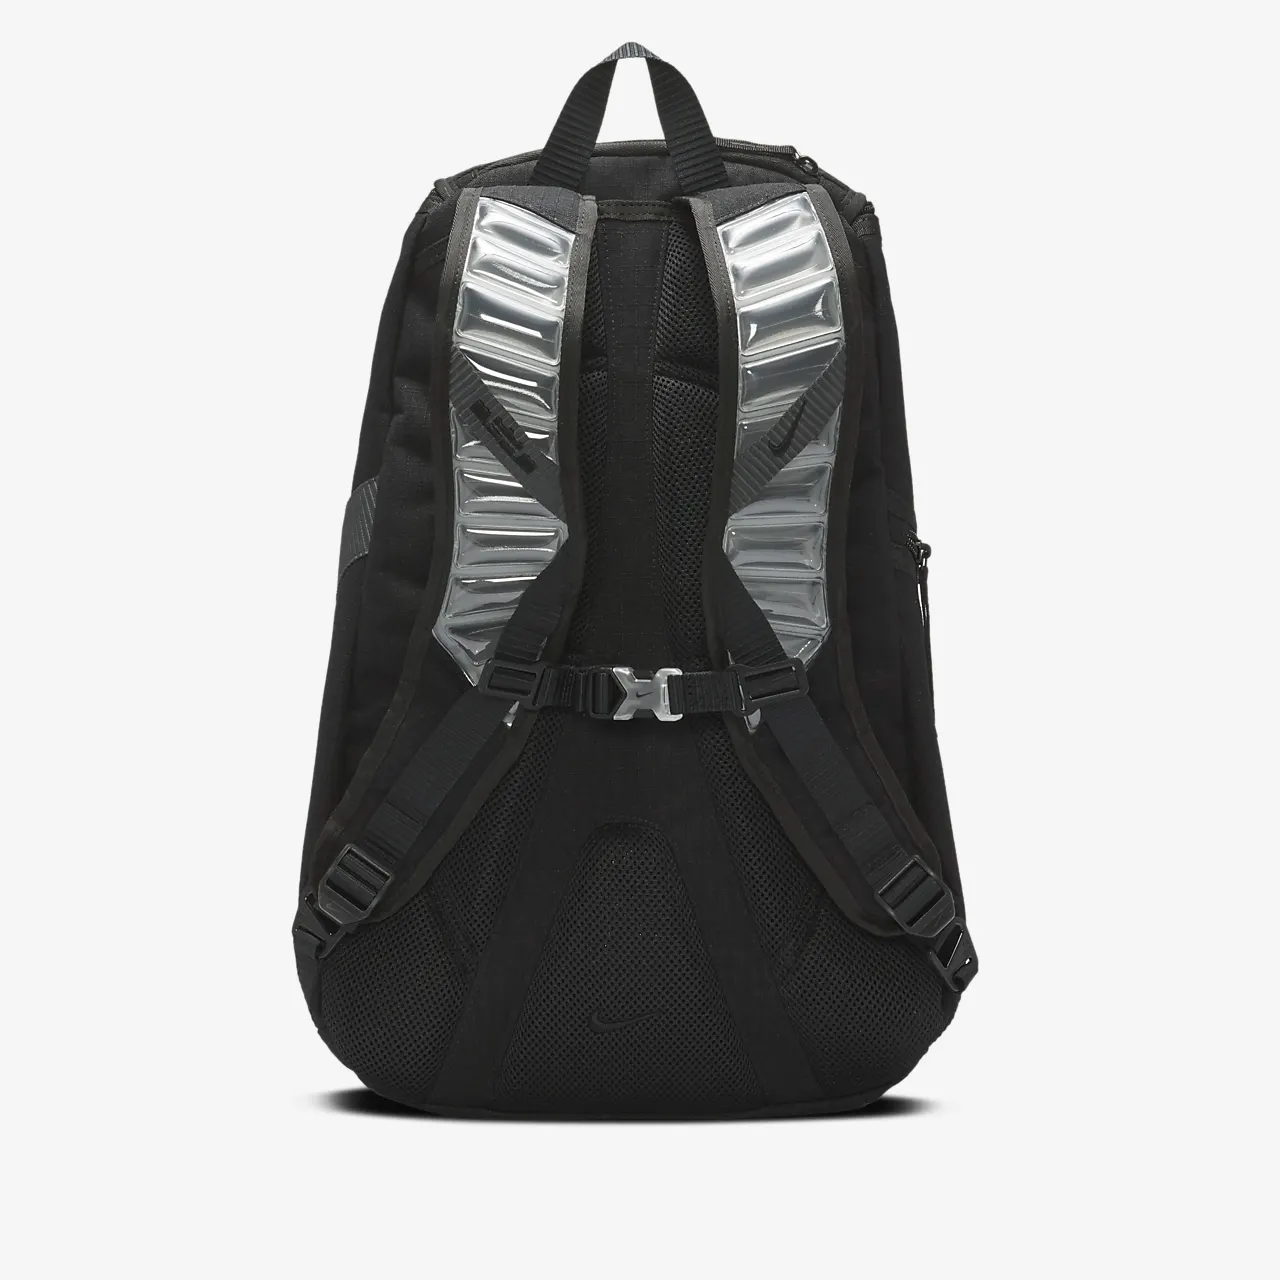 LeBron Premium Basketball Backpack CK6875-010